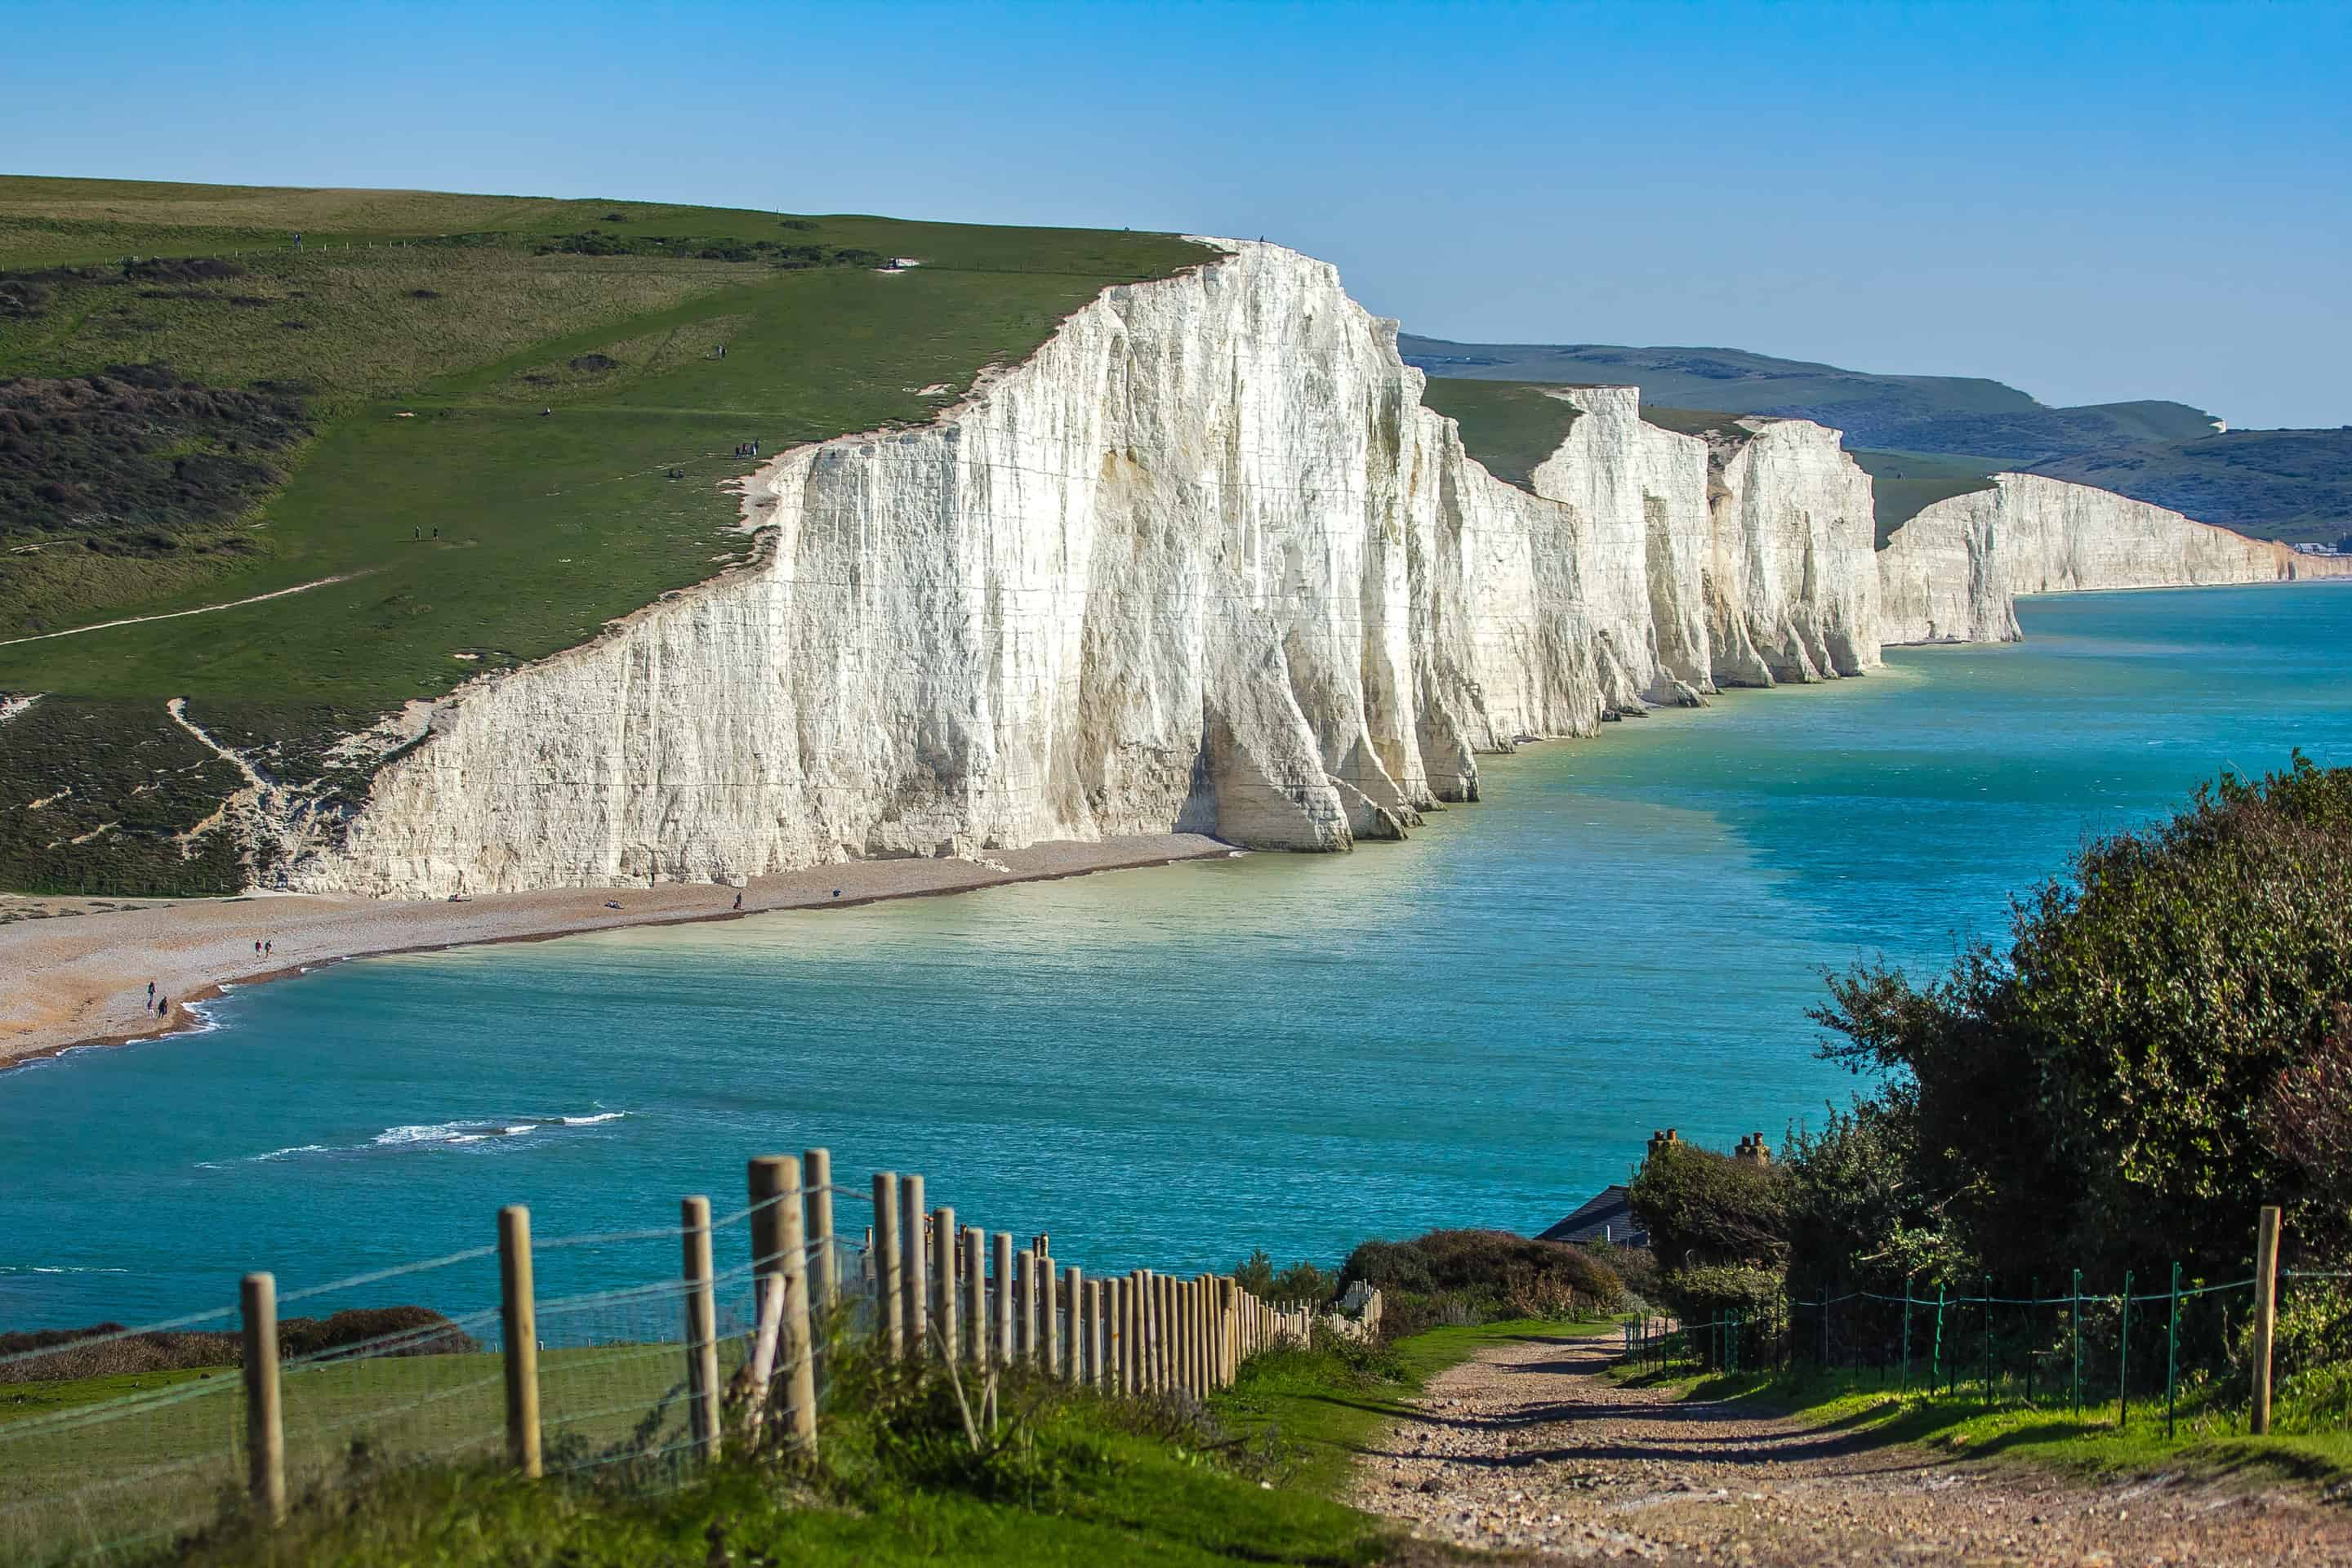 View of the Seven Sisters, a series of chalk cliffs by the English Channel, East Sussex, England